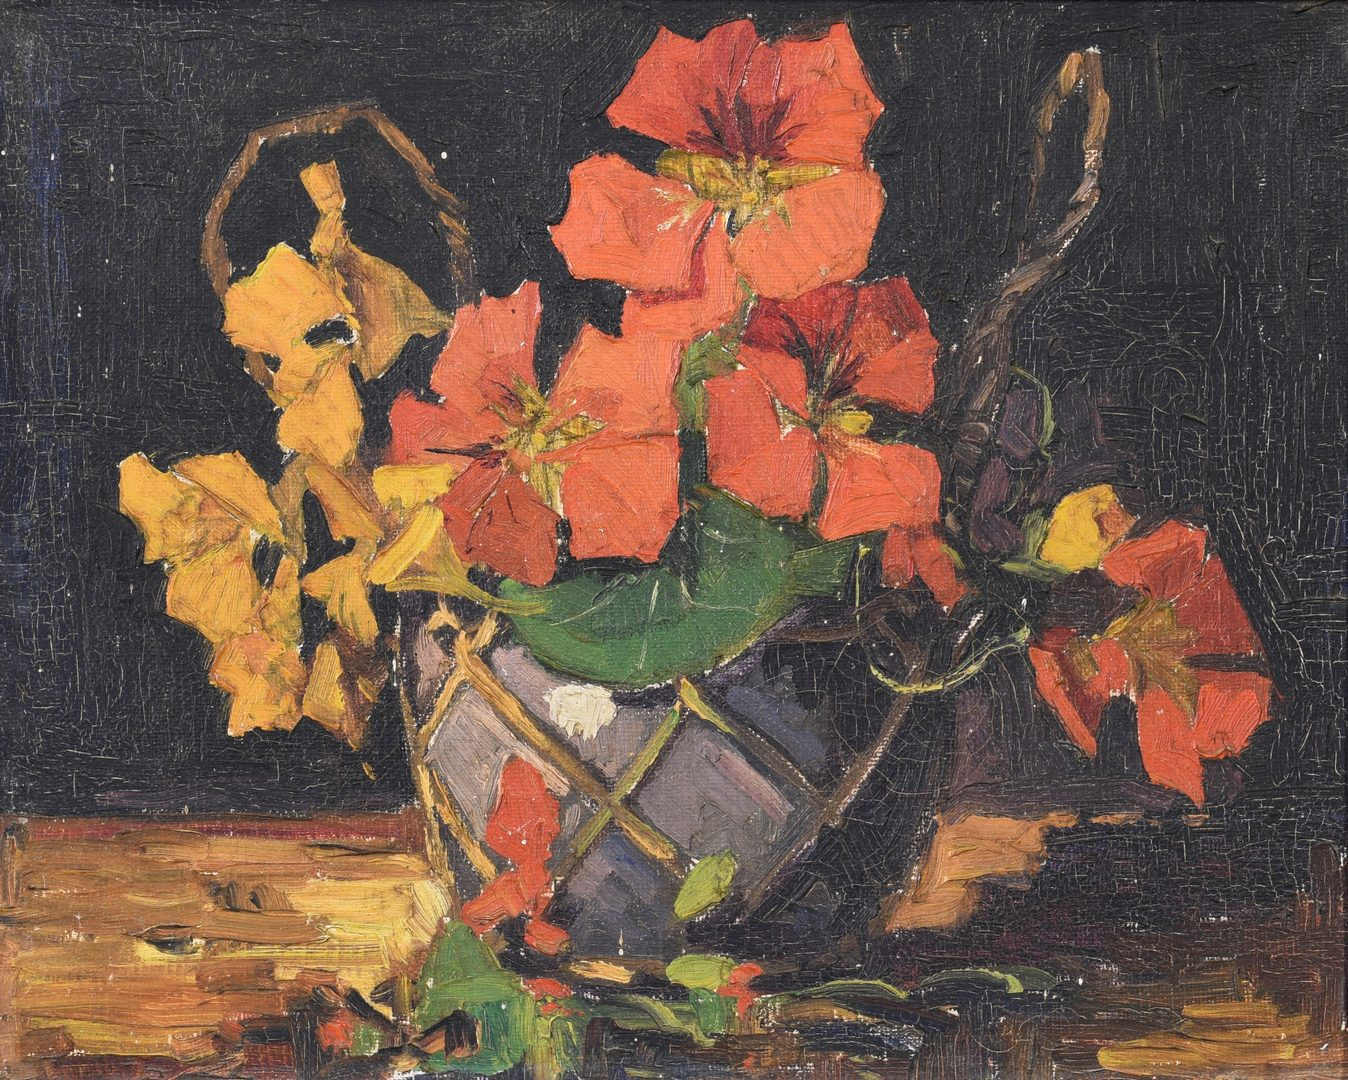 Lot 659: Impressionistic Still Life of Flowers